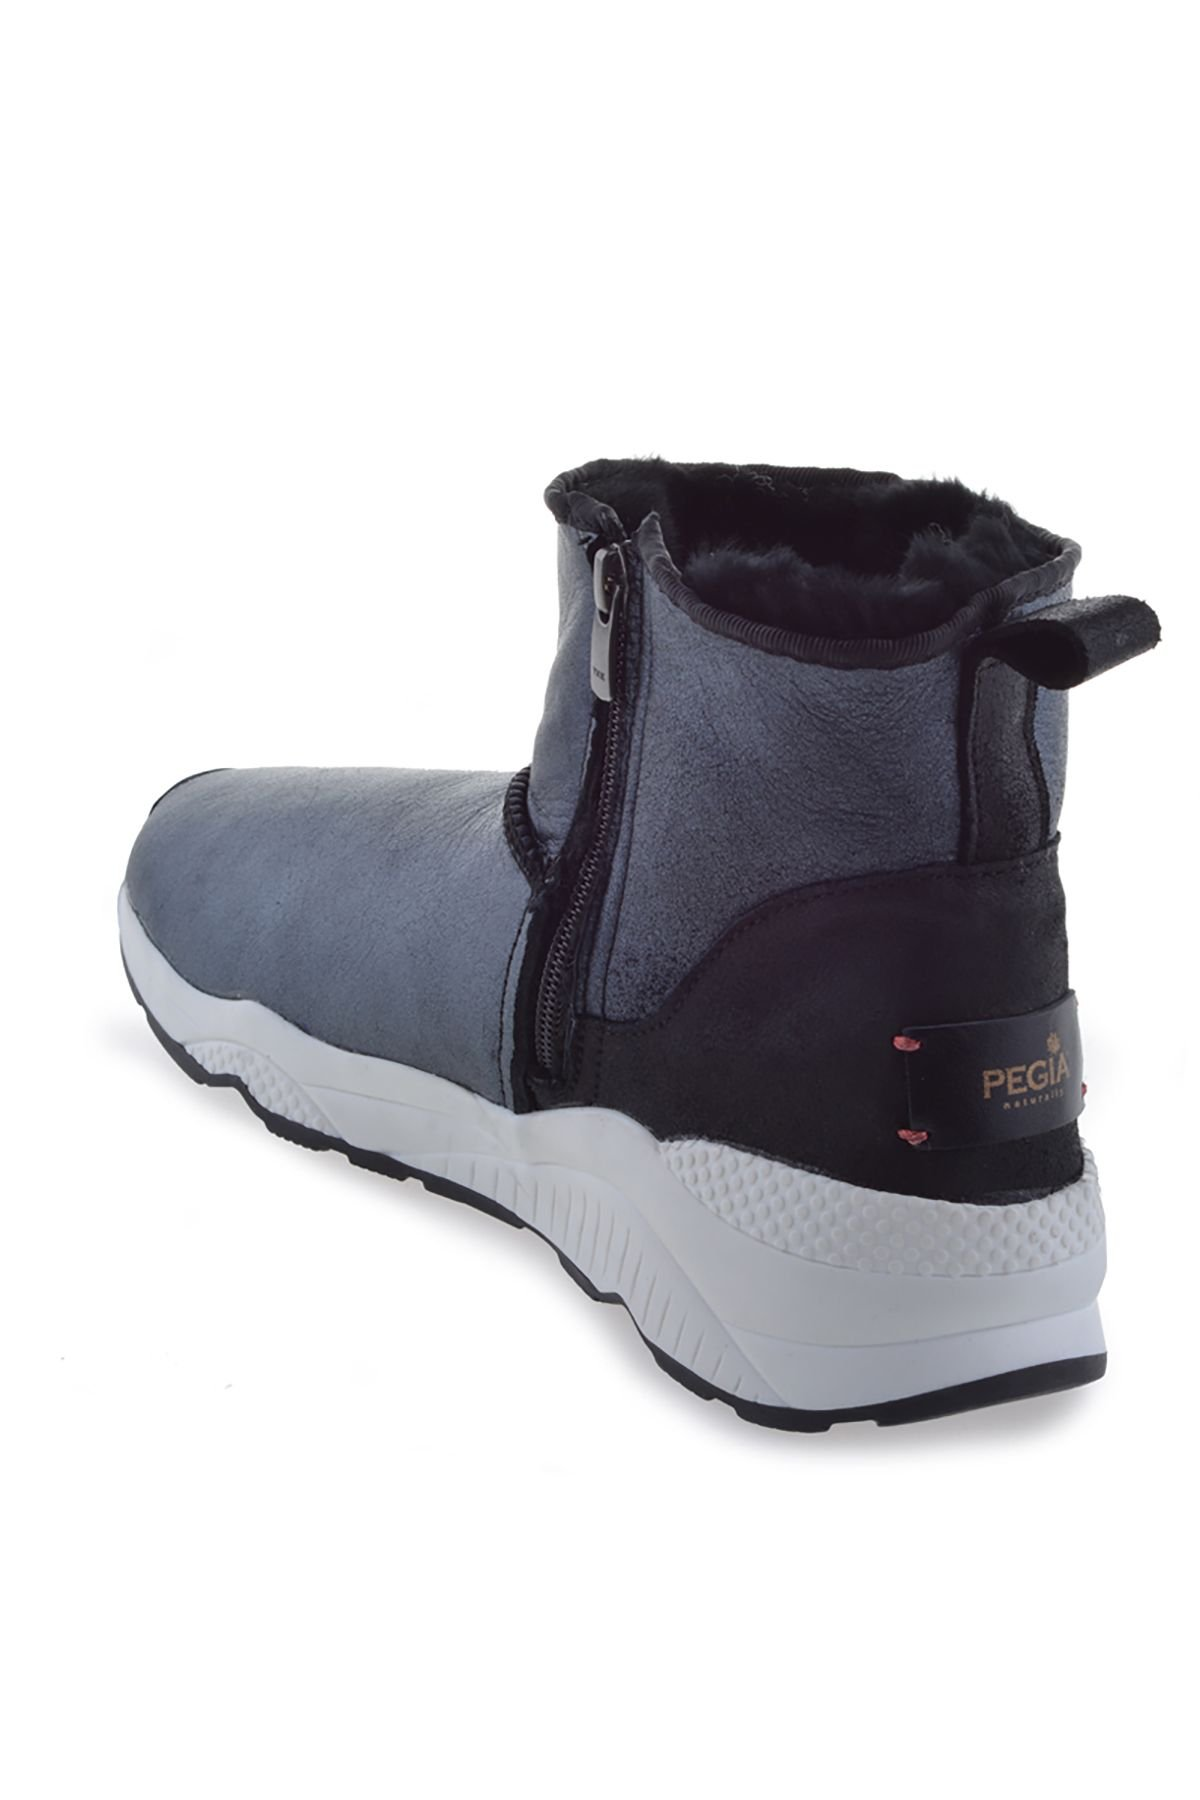 Pegia Women Boots From Genuine Suede And Fur With Side Zip Black